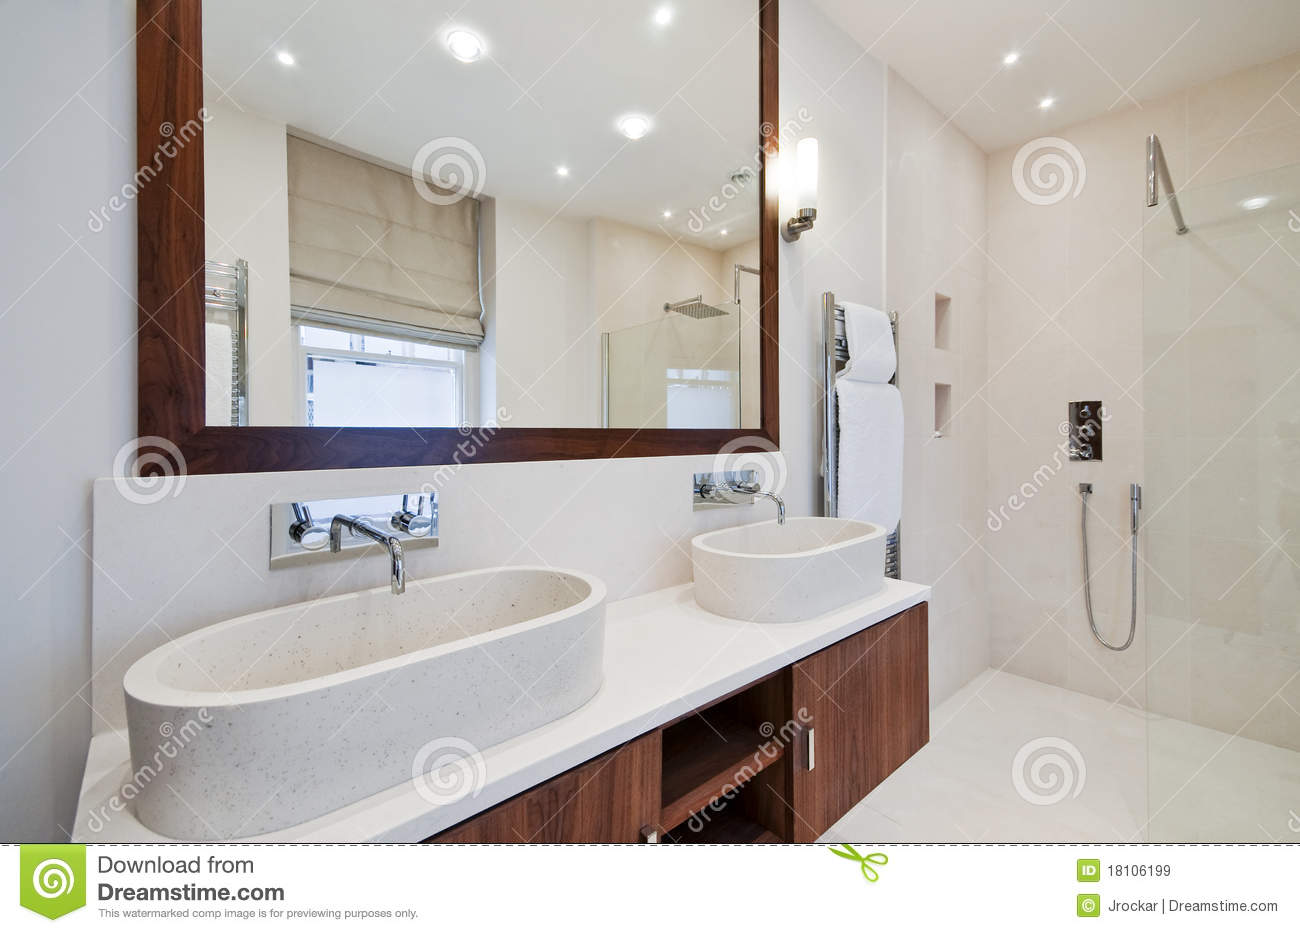 salle de bains avec le double lavabo de main image stock image du double contemporain 18106199. Black Bedroom Furniture Sets. Home Design Ideas